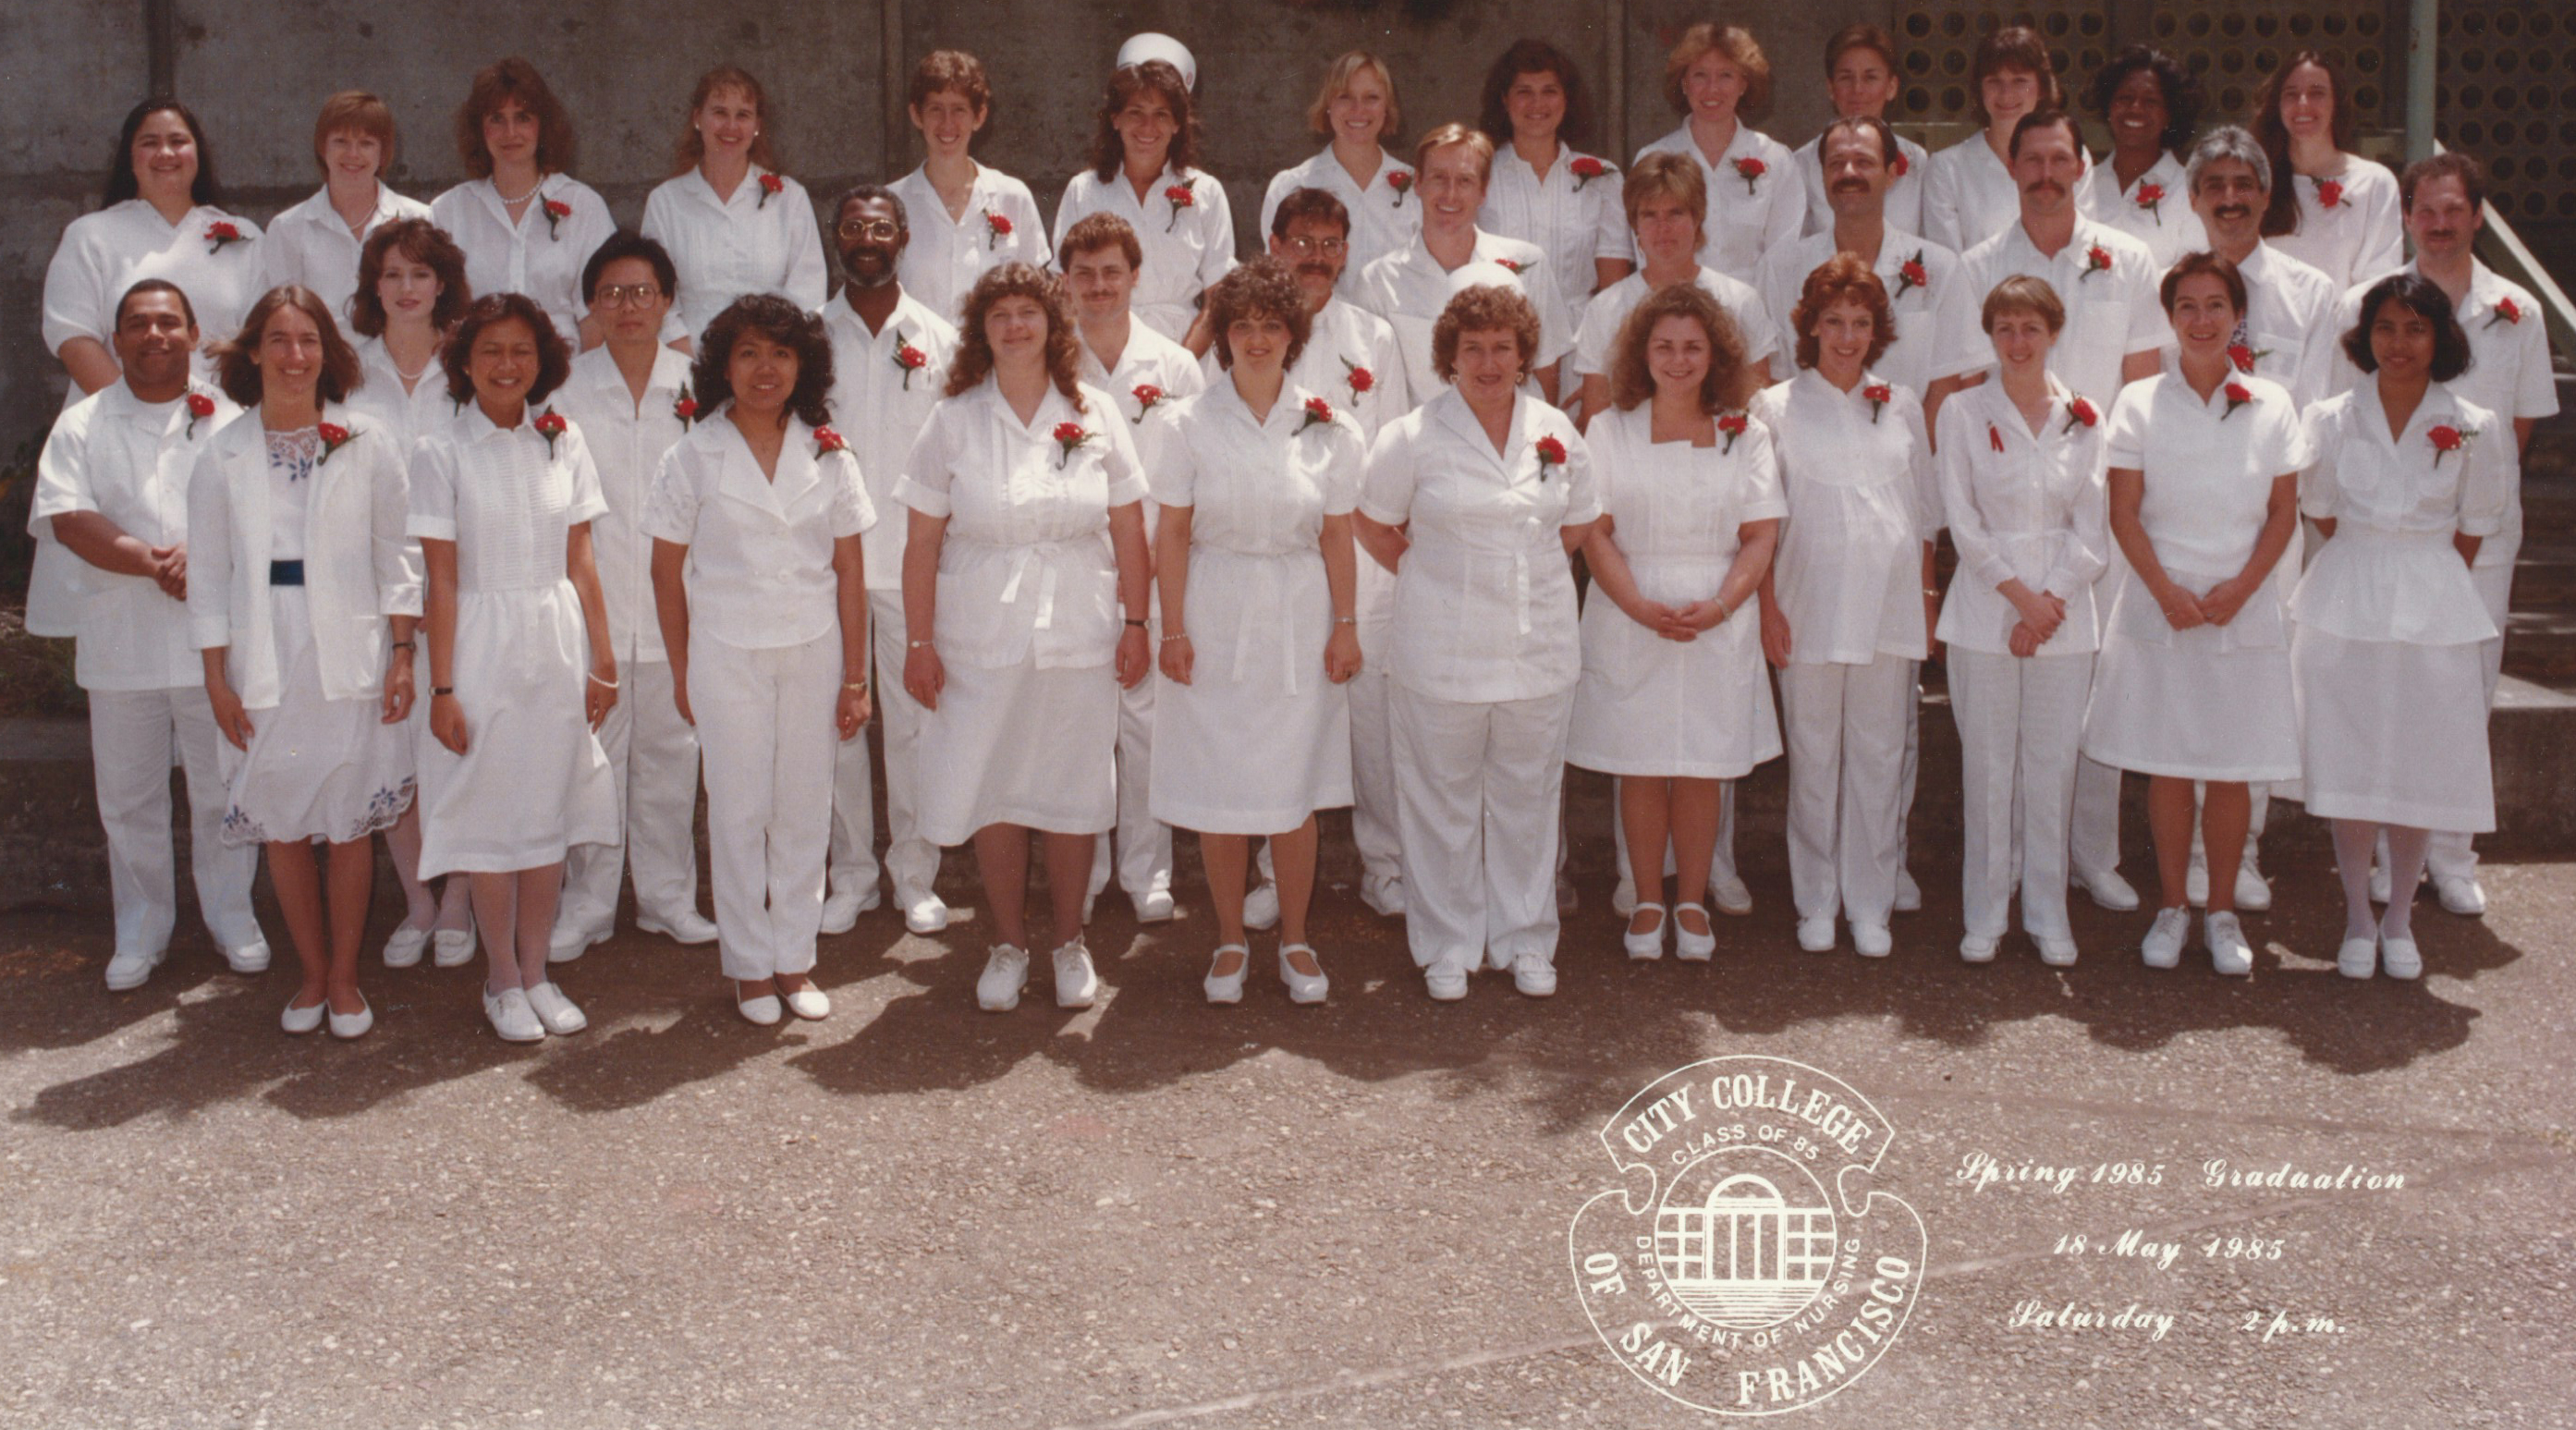 1985- Graduation from Nursing School